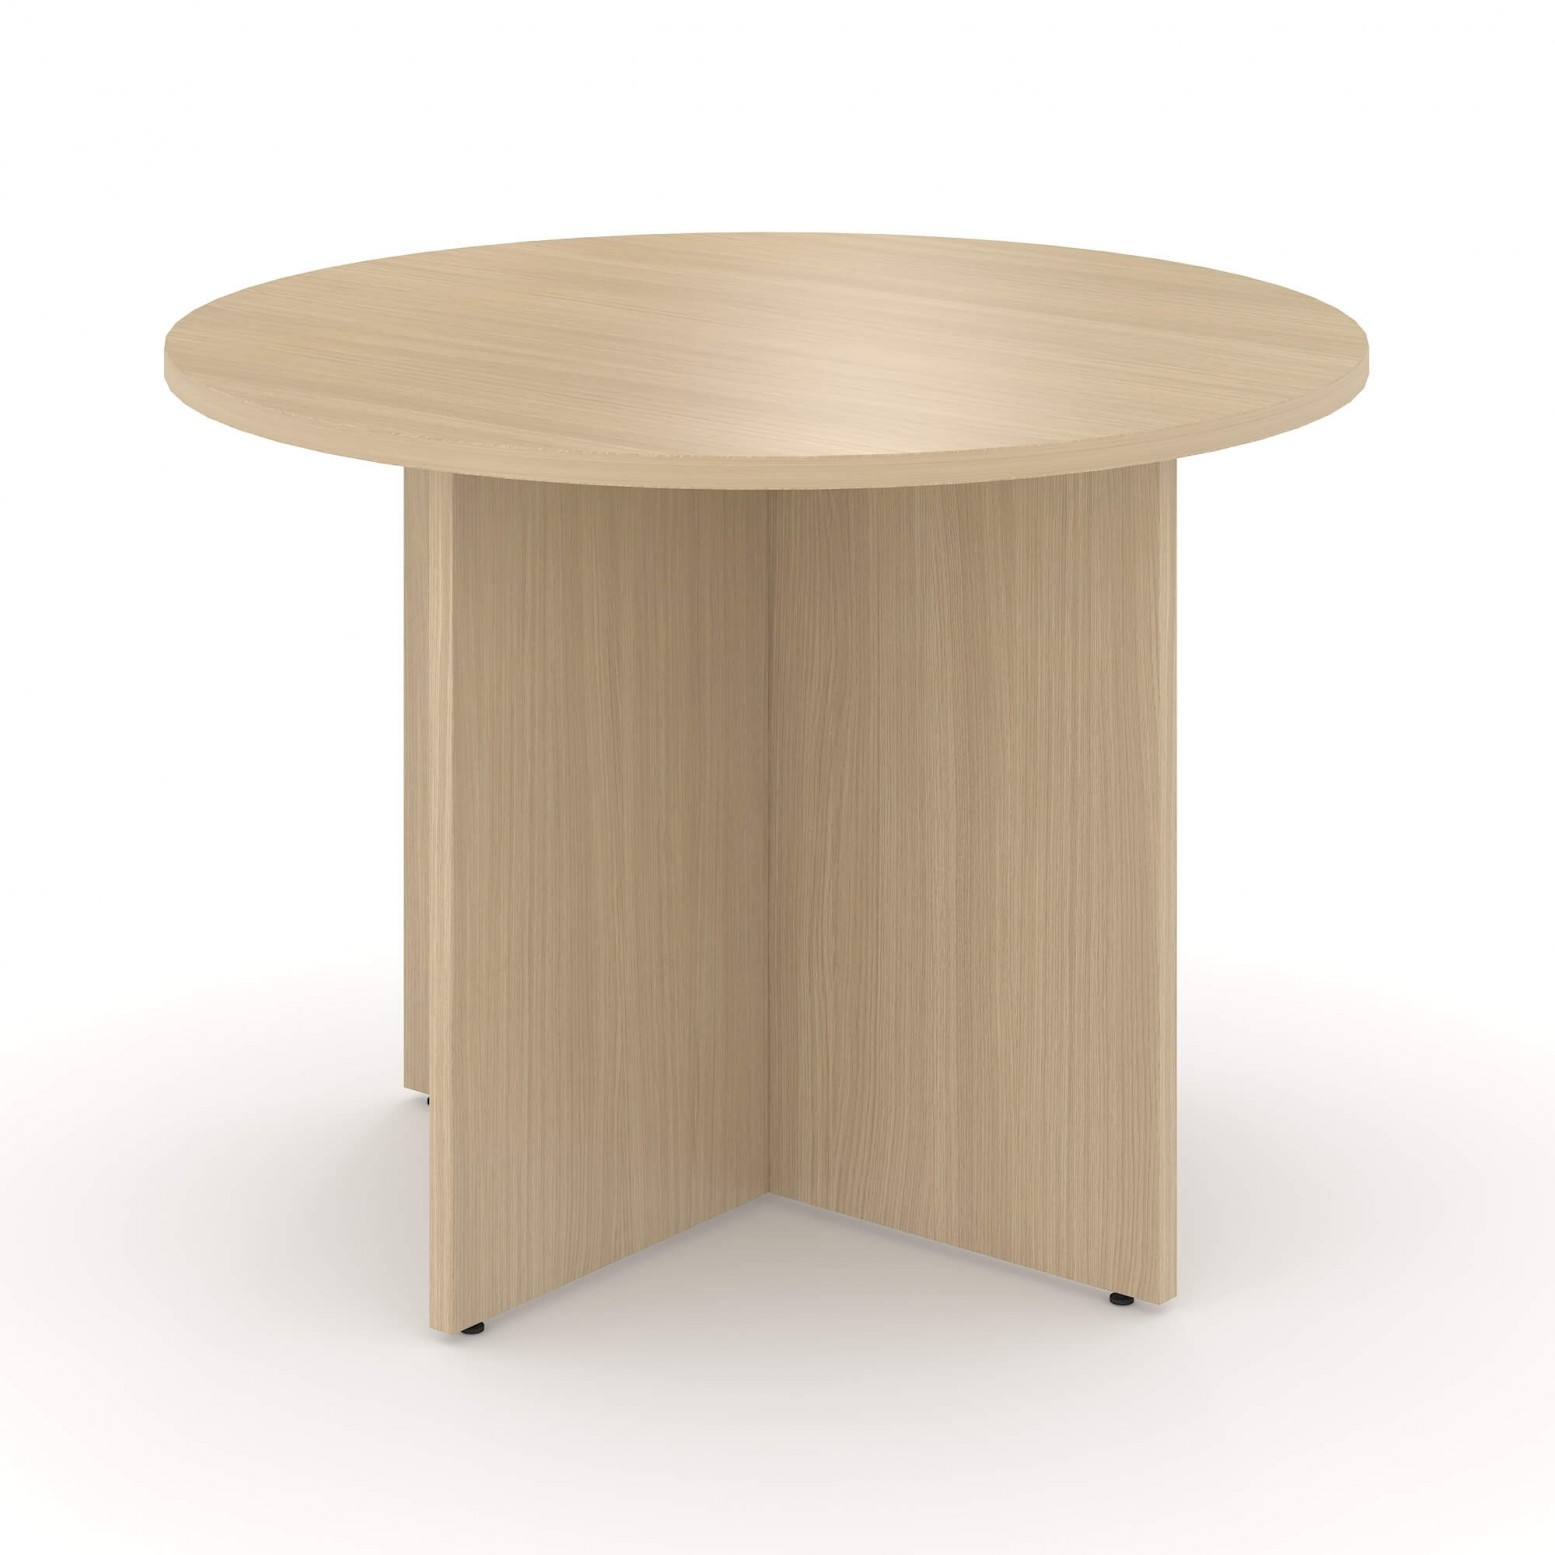 Optima Small Round Meeting Table For 4 Persons Sohomod Com